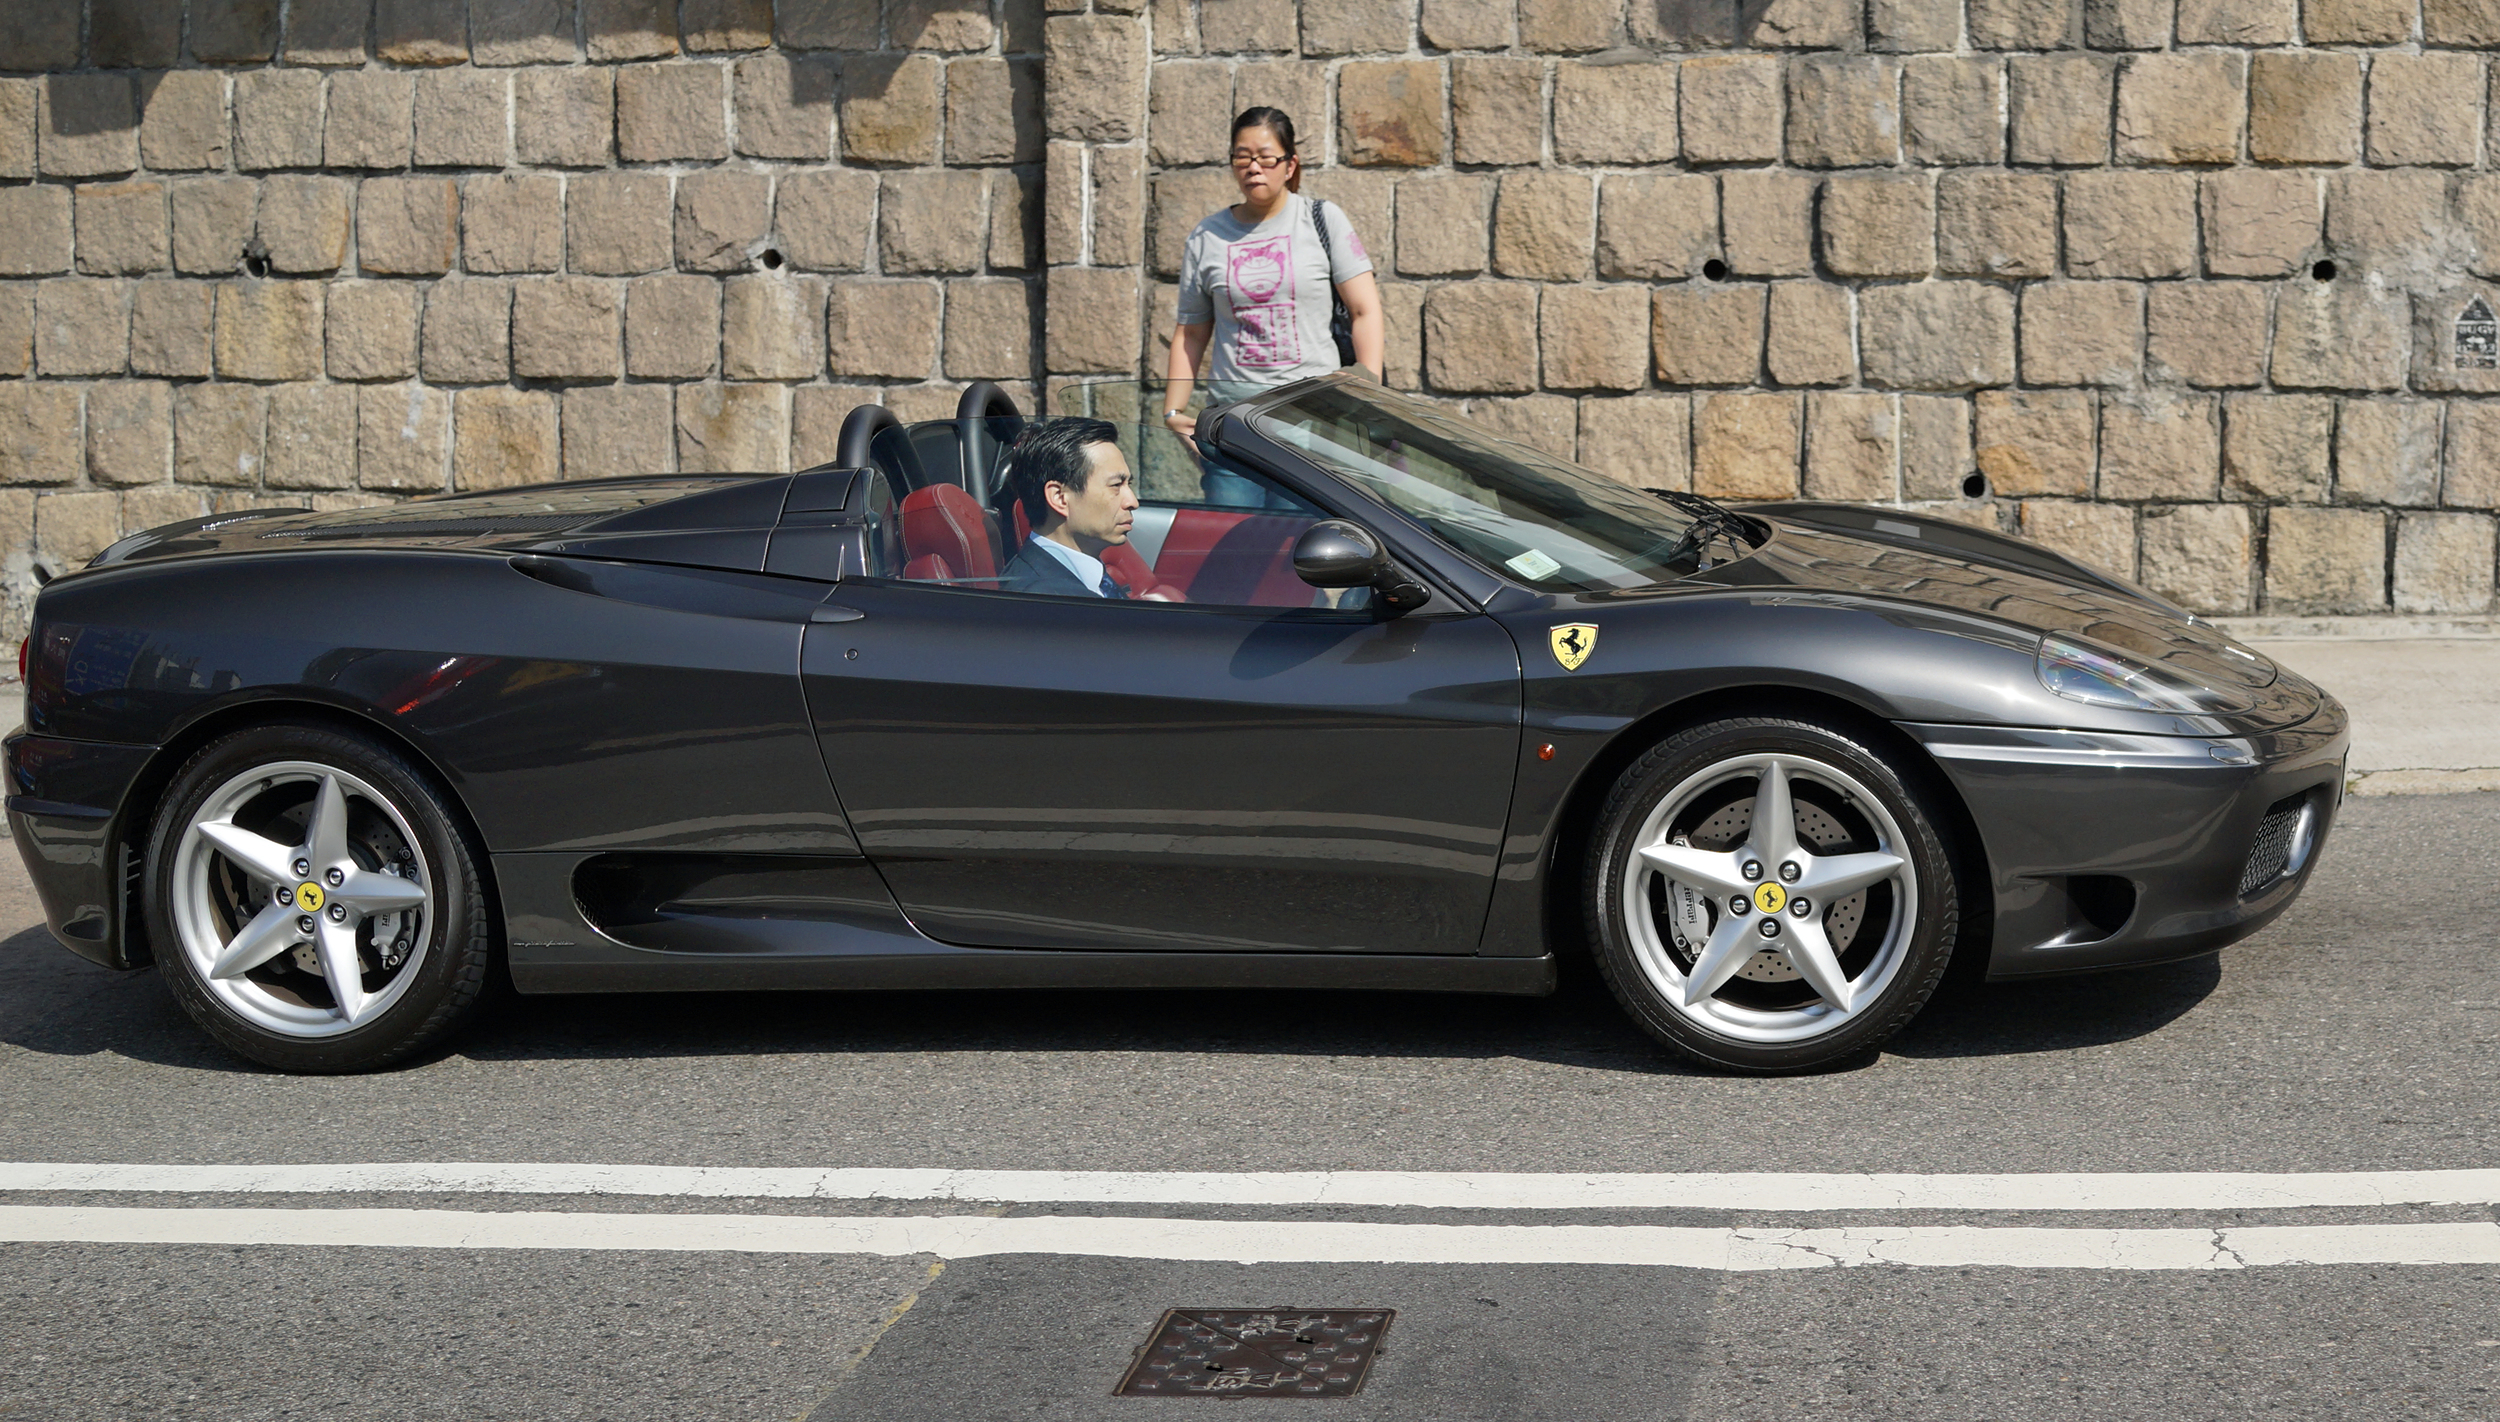 The guy in the suit in the Ferrari gets an admiring glance from a gobsmacked young lady near the Hong Kong Country Club.